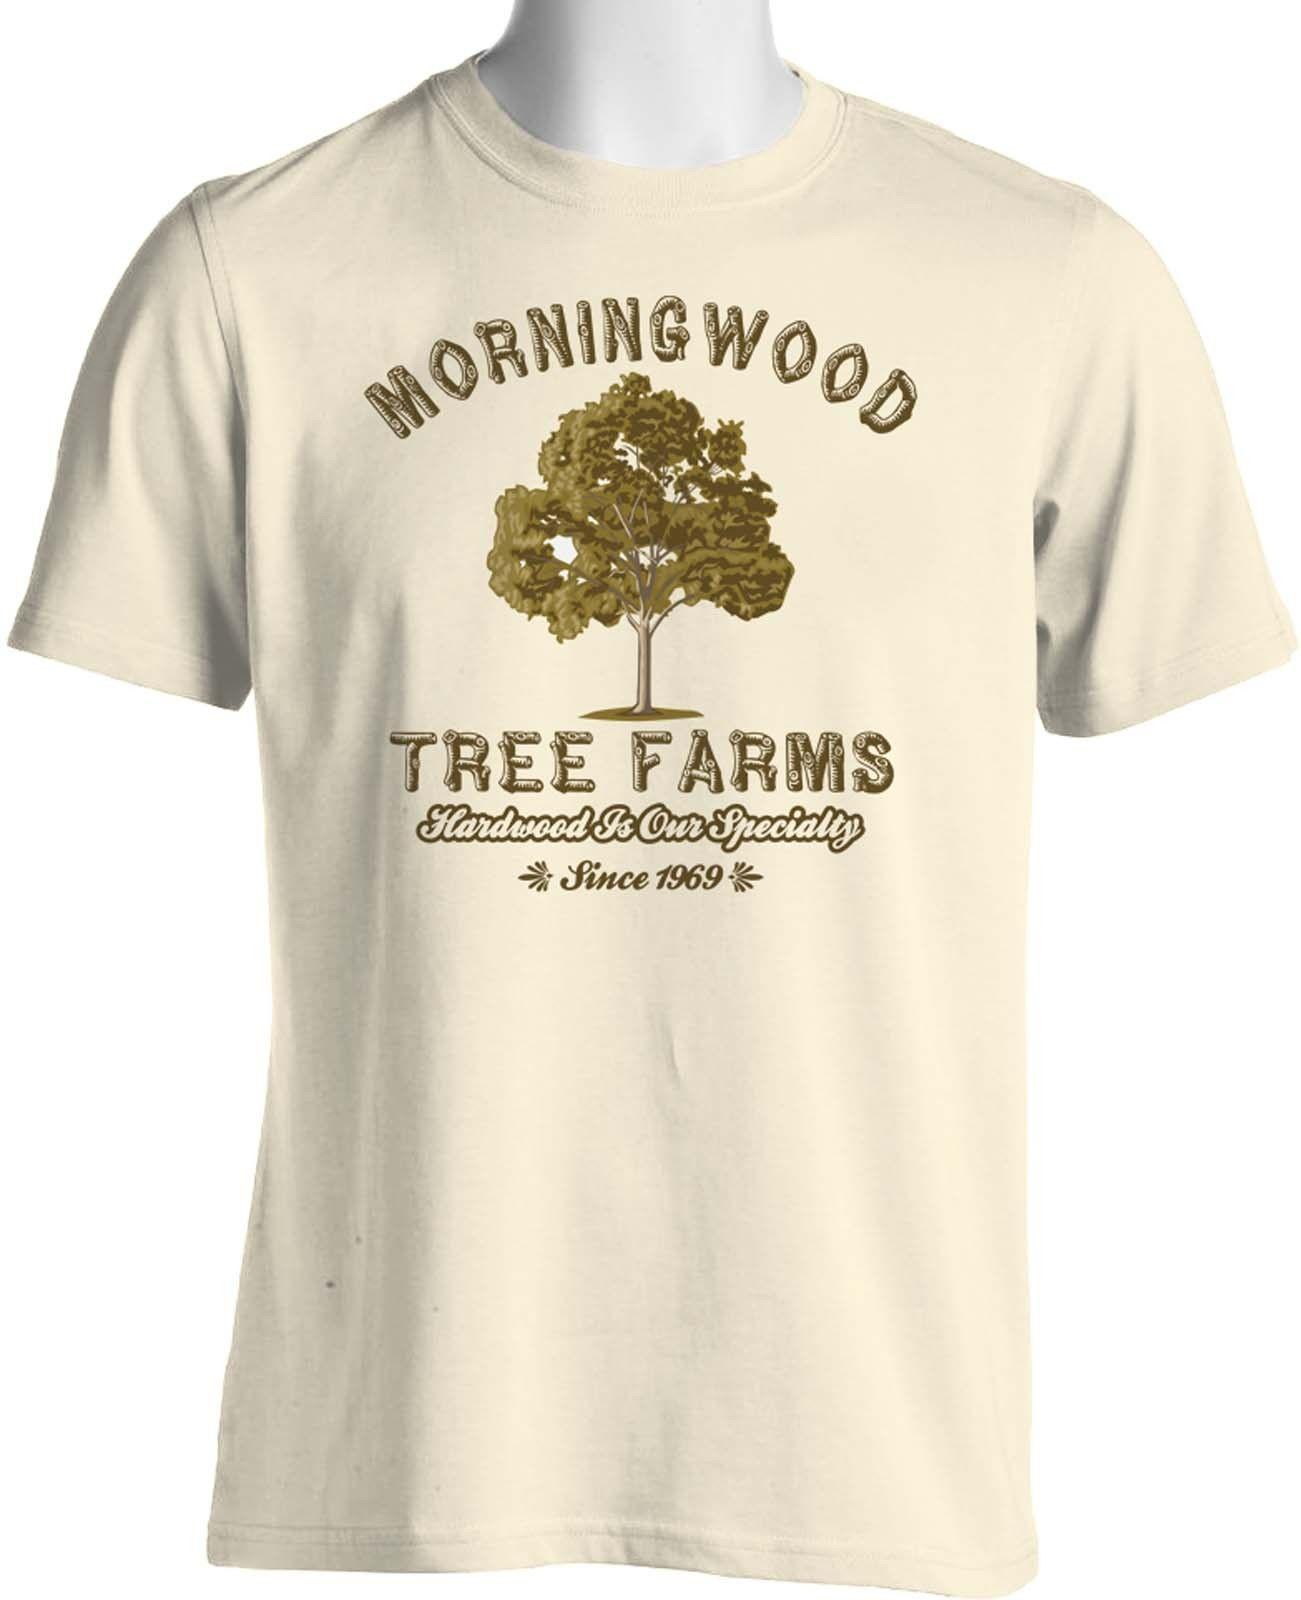 funny hardwood t shirt humorous lumber woodworking tree farm mens free  shipping